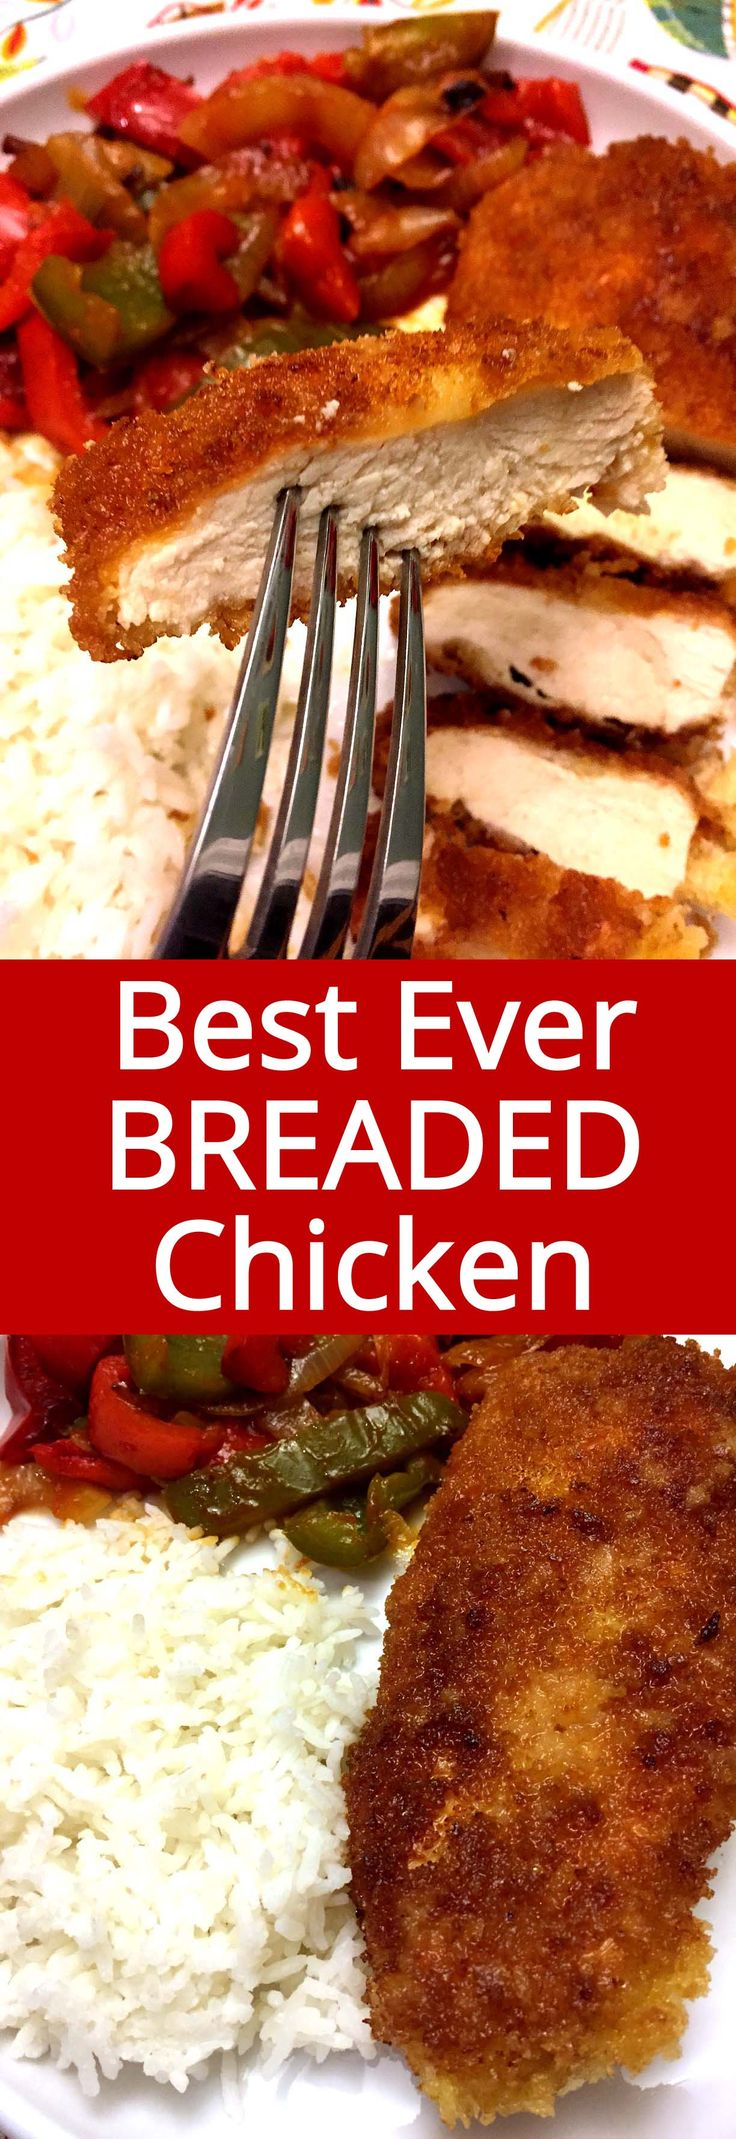 So golden and crispy, just the way breaded chicken has to be! This is my favorite pan-fried breaded chicken breast recipe!